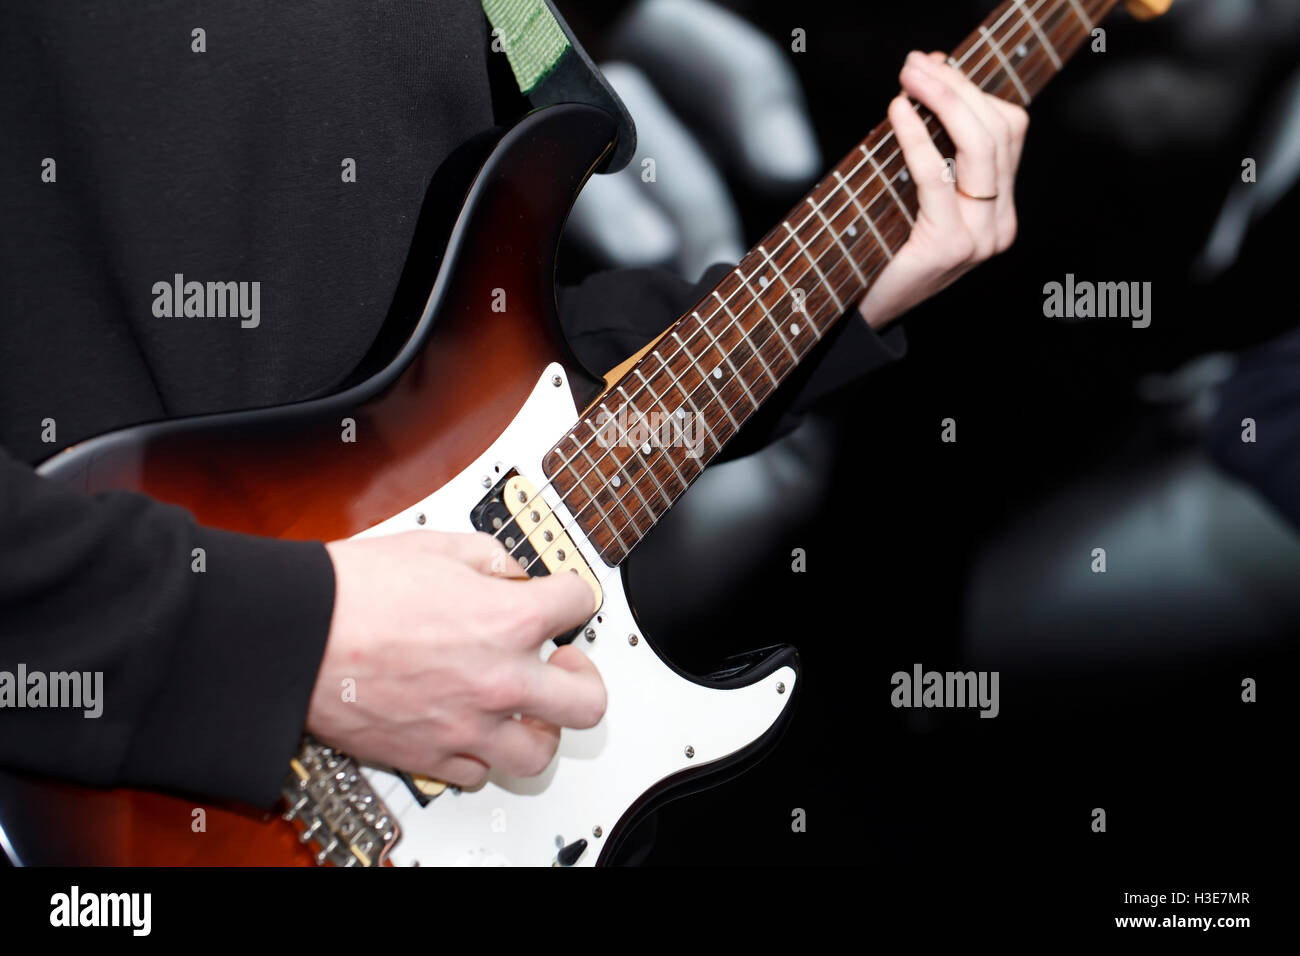 A Young Musician Playing Electric Guitar Close Up Stock Photo